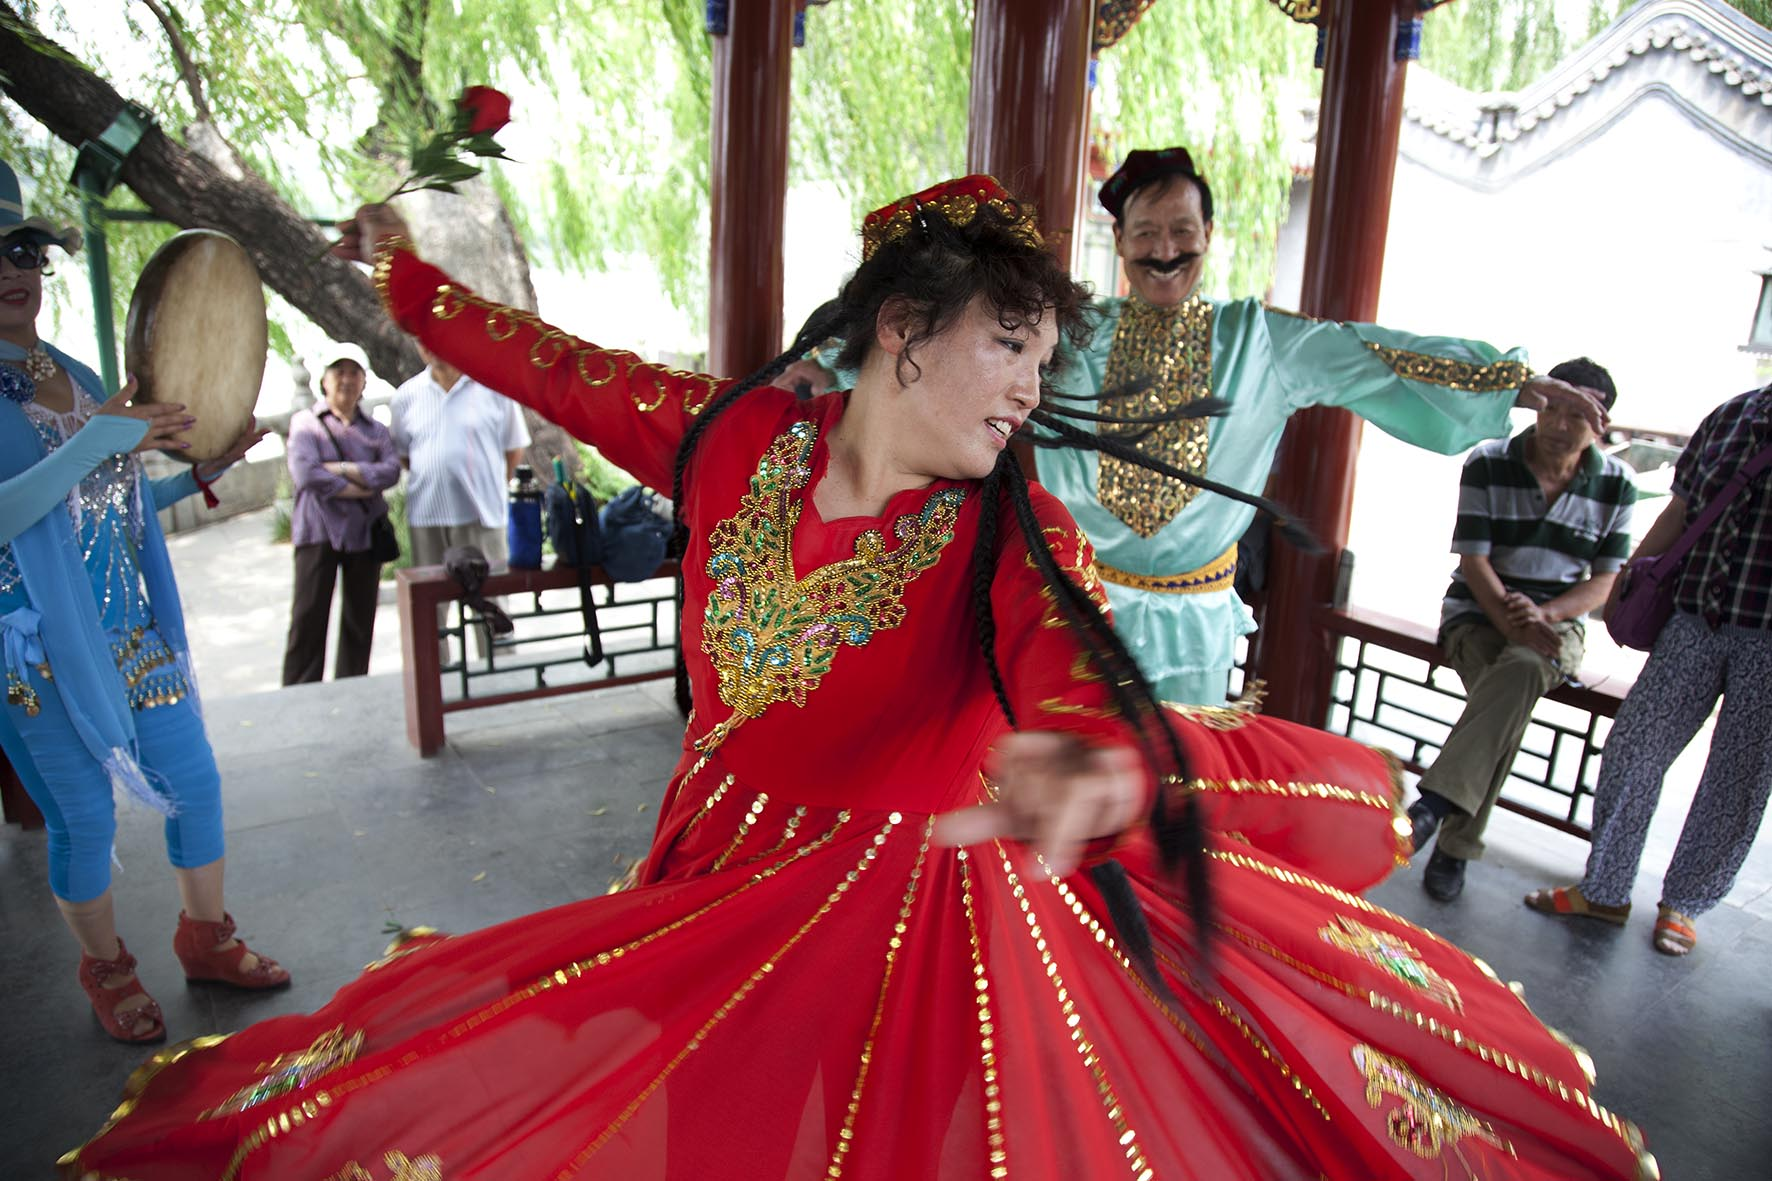 People dressed in traditional clothing dance together in a form which also tells a story in Beihai Park.